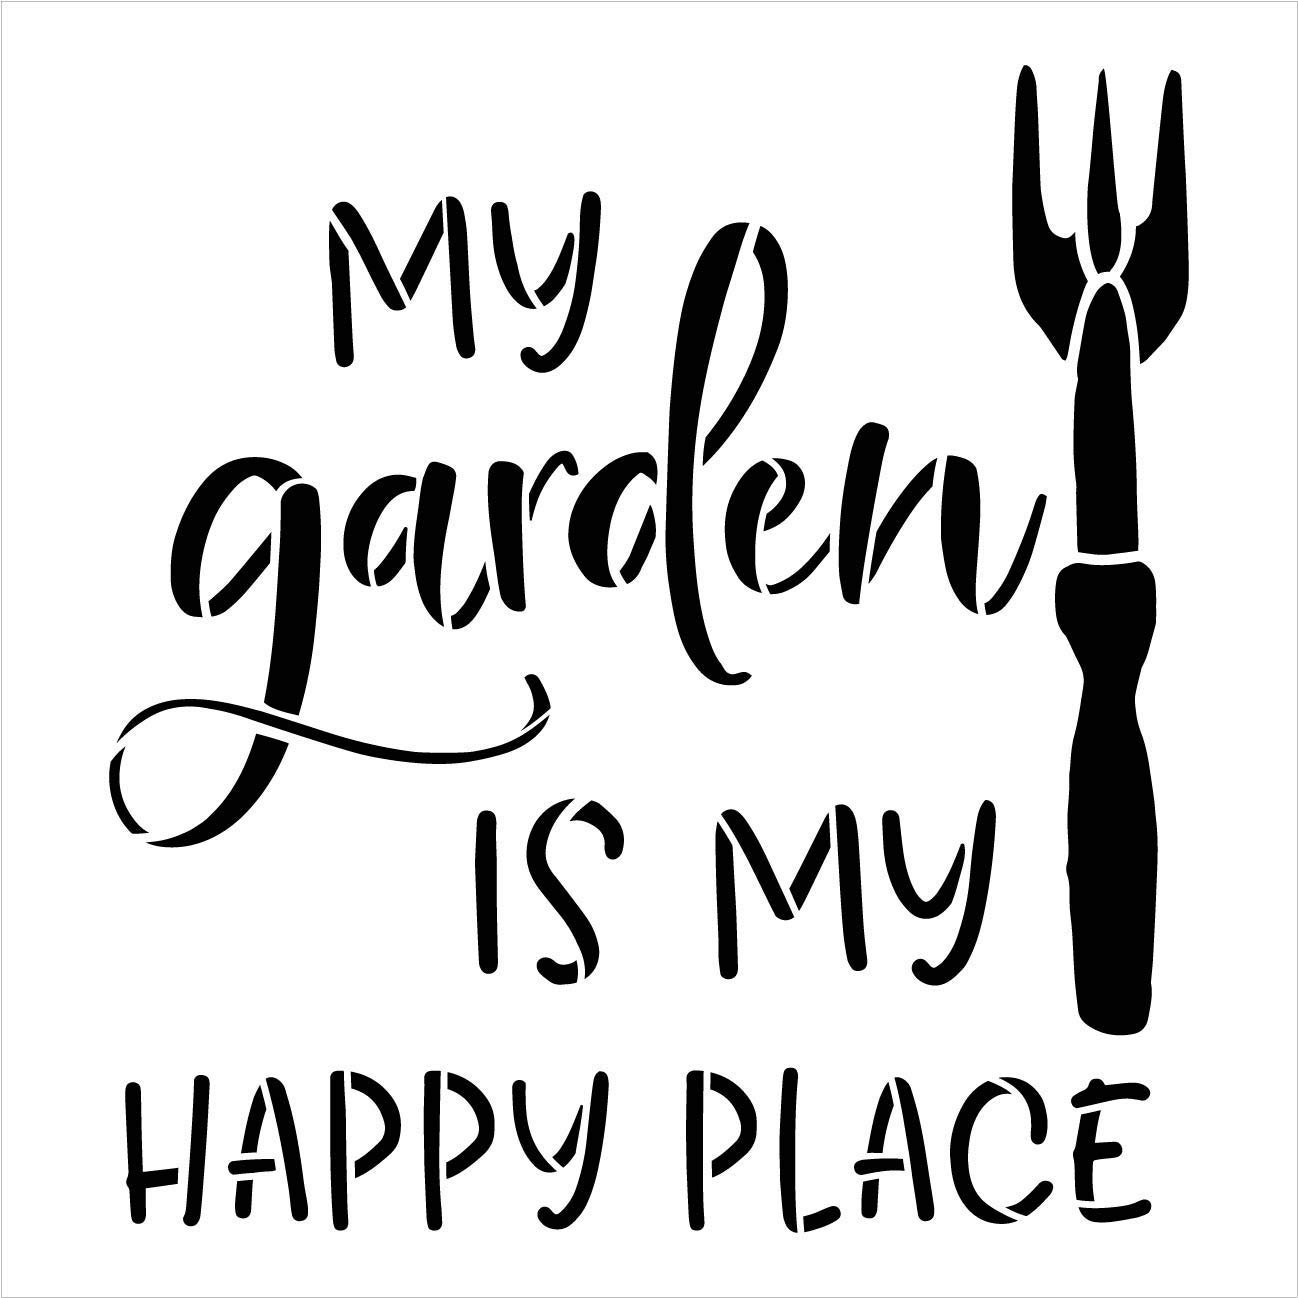 My Garden is My Happy Place Stencil with Hand Rake by StudioR12 | DIY Fun Outdoor Spring Backyard Home Decor | Craft & Paint Farmhouse Wood Signs | Reusable Mylar Template | Select Size